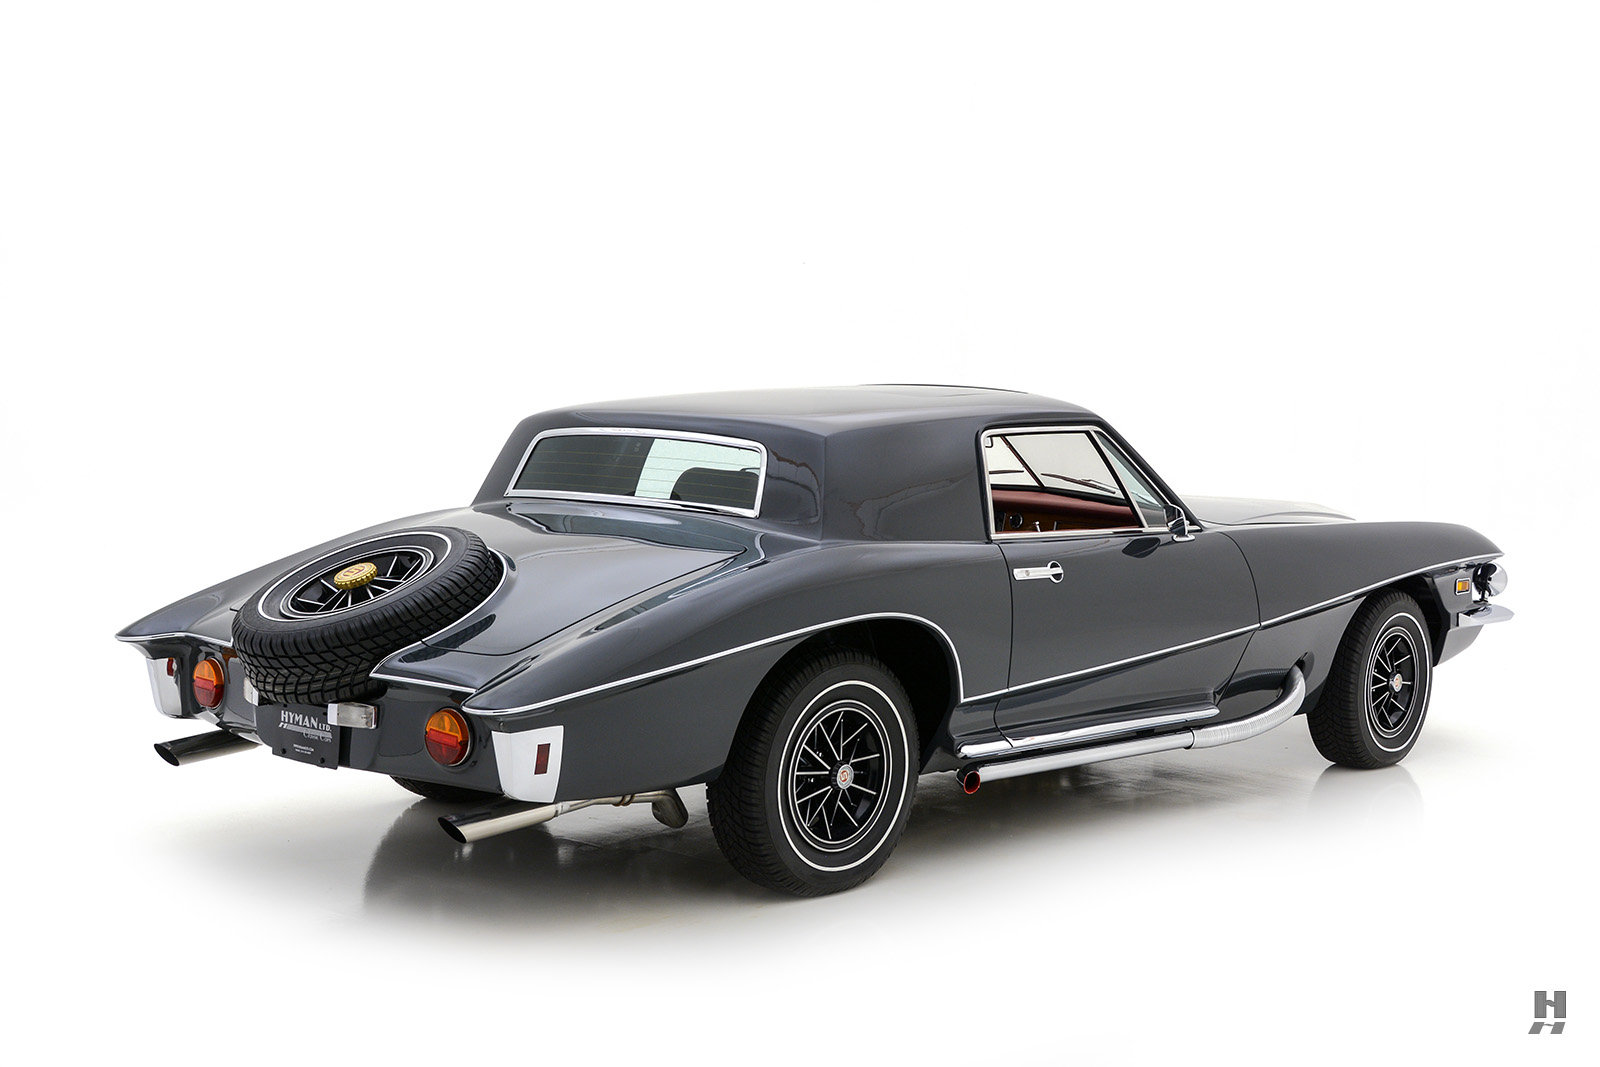 1971 STUTZ BLACKHAWK SERIES 1 COUPE For Sale (picture 5 of 6)